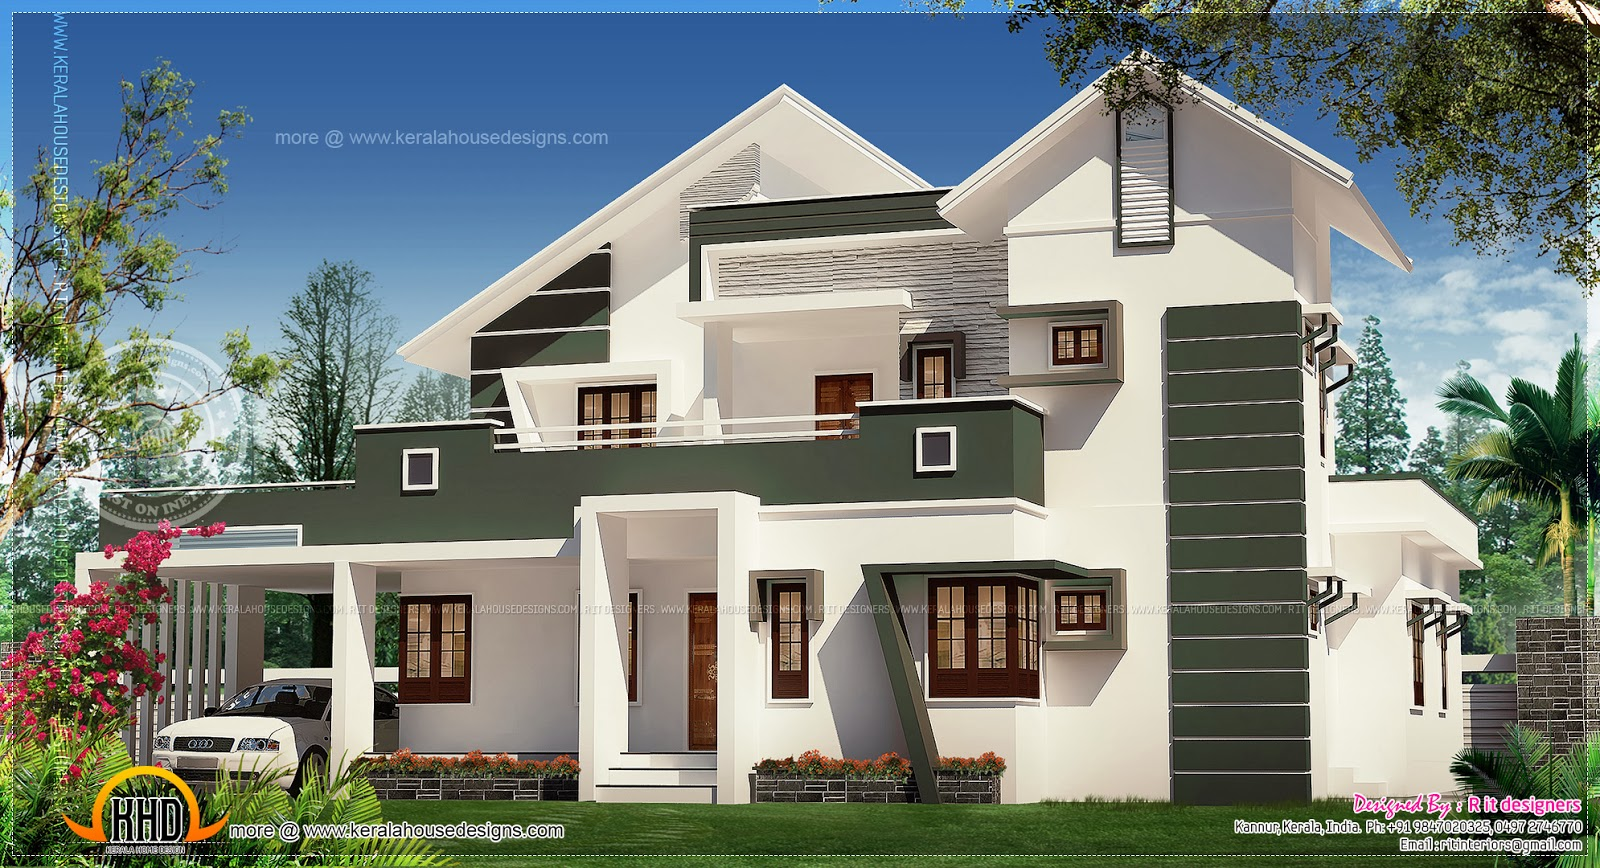 Luxury modern villa elevation home kerala plans for Modern villa plans and elevations